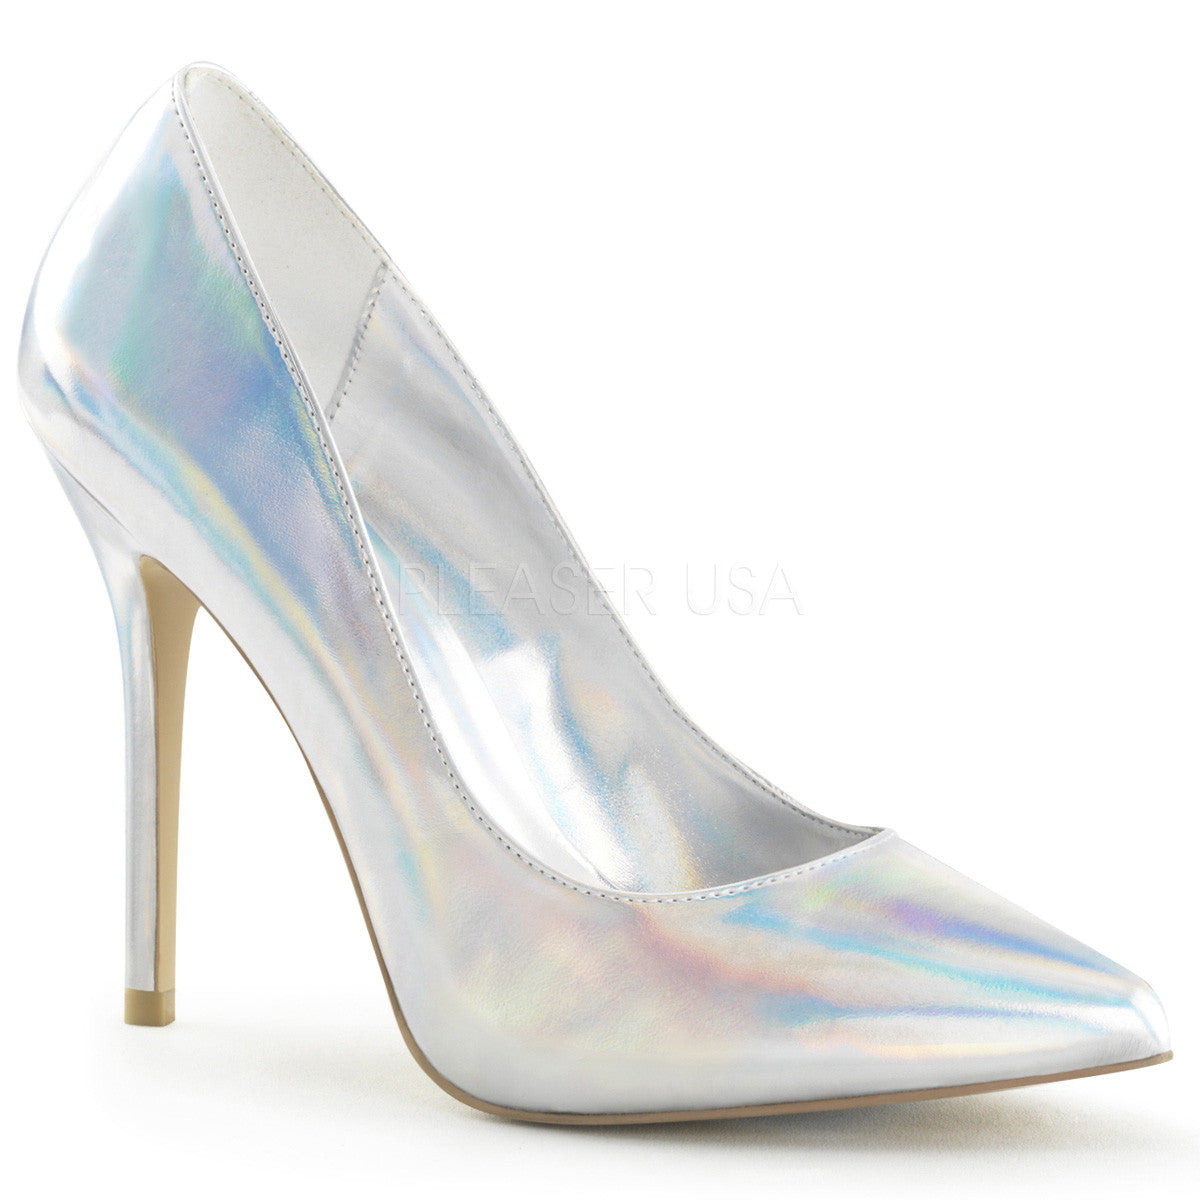 PLEASER AMUSE-20 Silver Hologram Pu Pumps - Shoecup.com